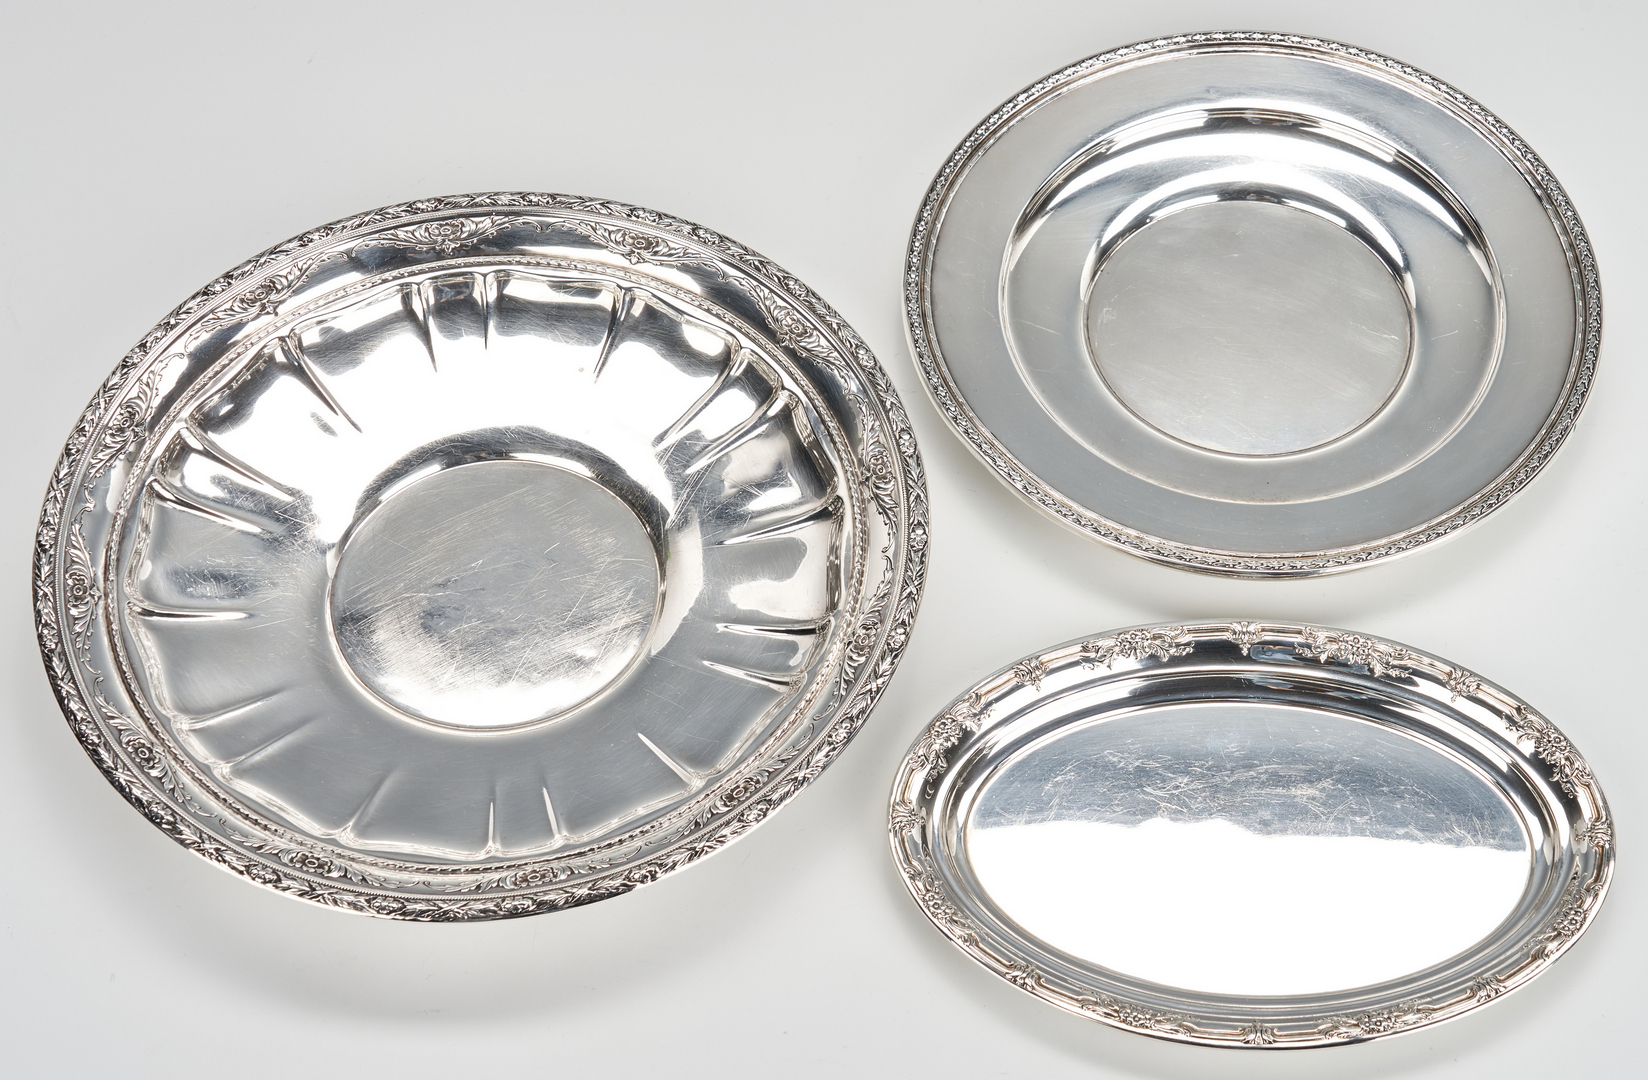 Lot 942: 4 Sterling Silver Bowls/Trays, incl. Wallace, Dominick & Haff, International